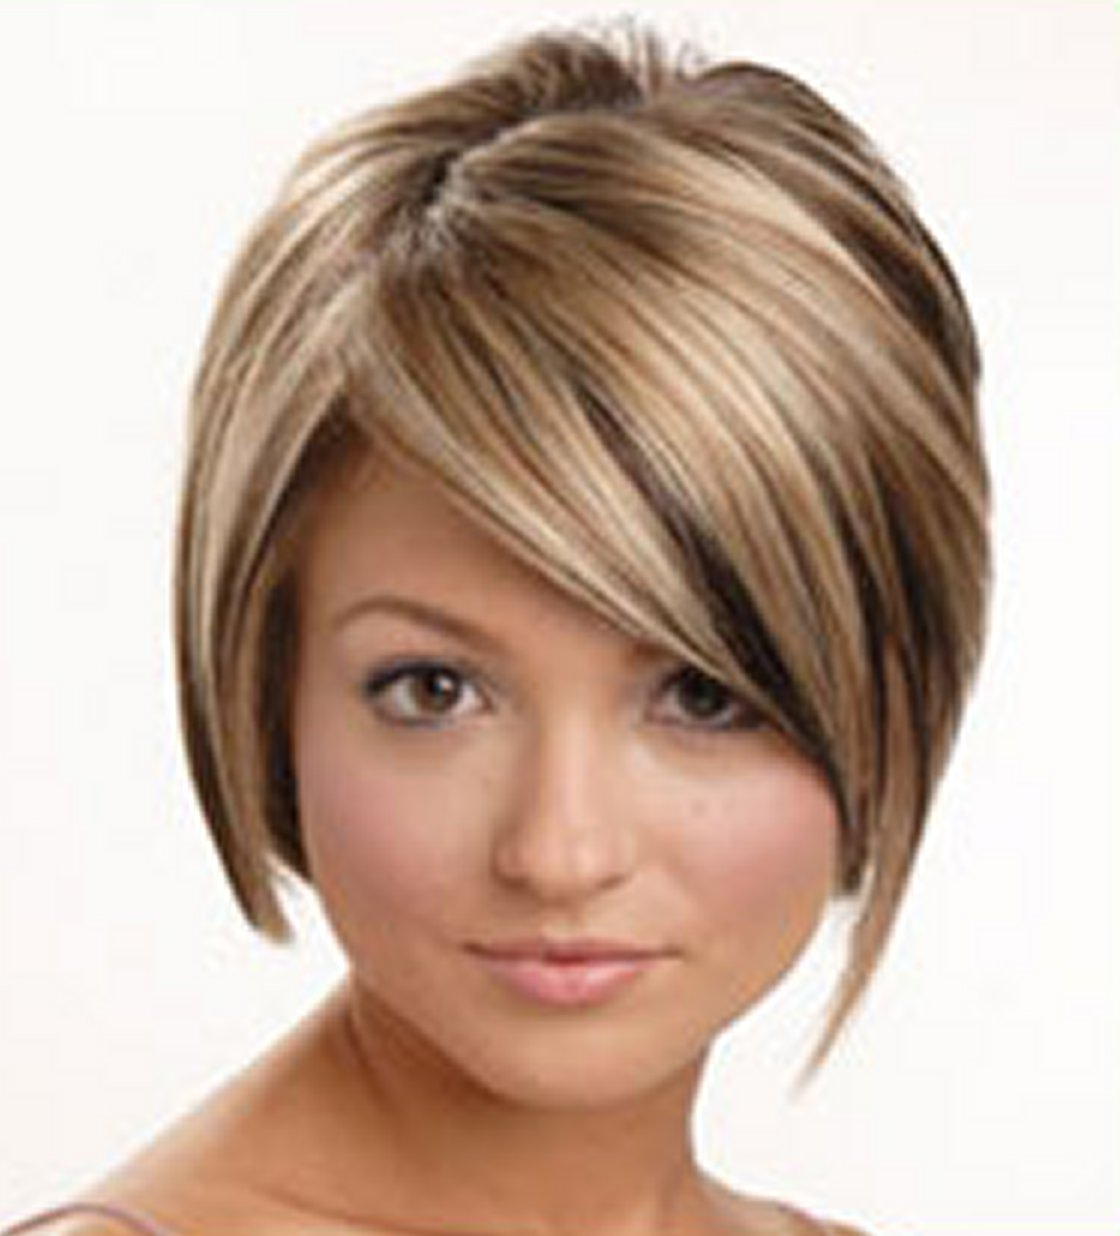 Short Curly Hairstyles For Round Faces   1080P Hd Wallpaper With Short Hairstyles For Curly Fine Hair (View 10 of 25)